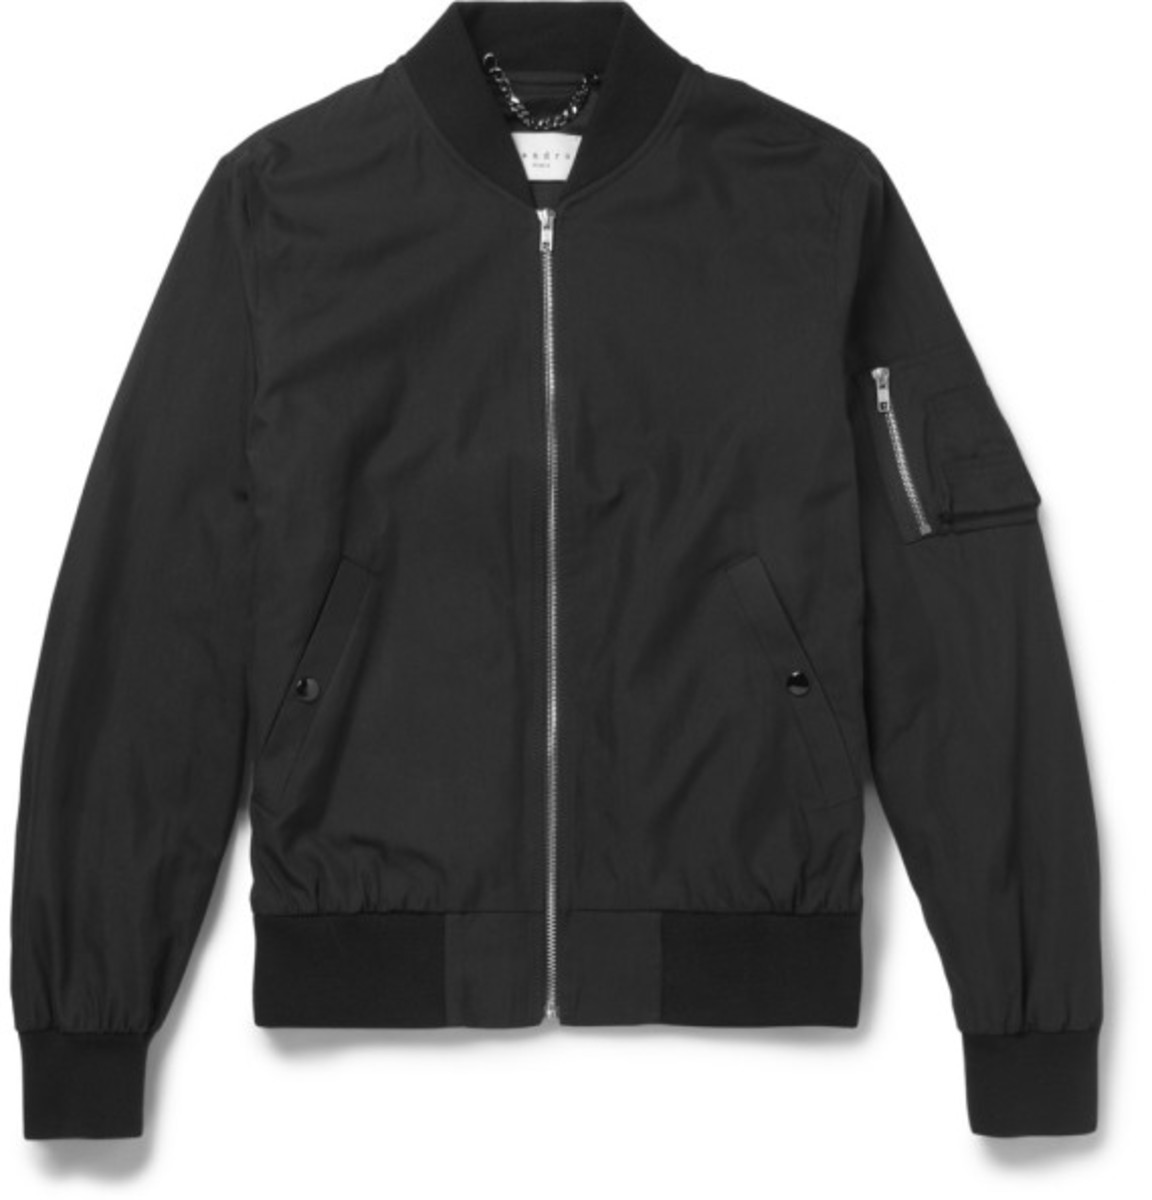 Spring 2014 Trends - Top 10 Bomber Jackets Available Now - 1